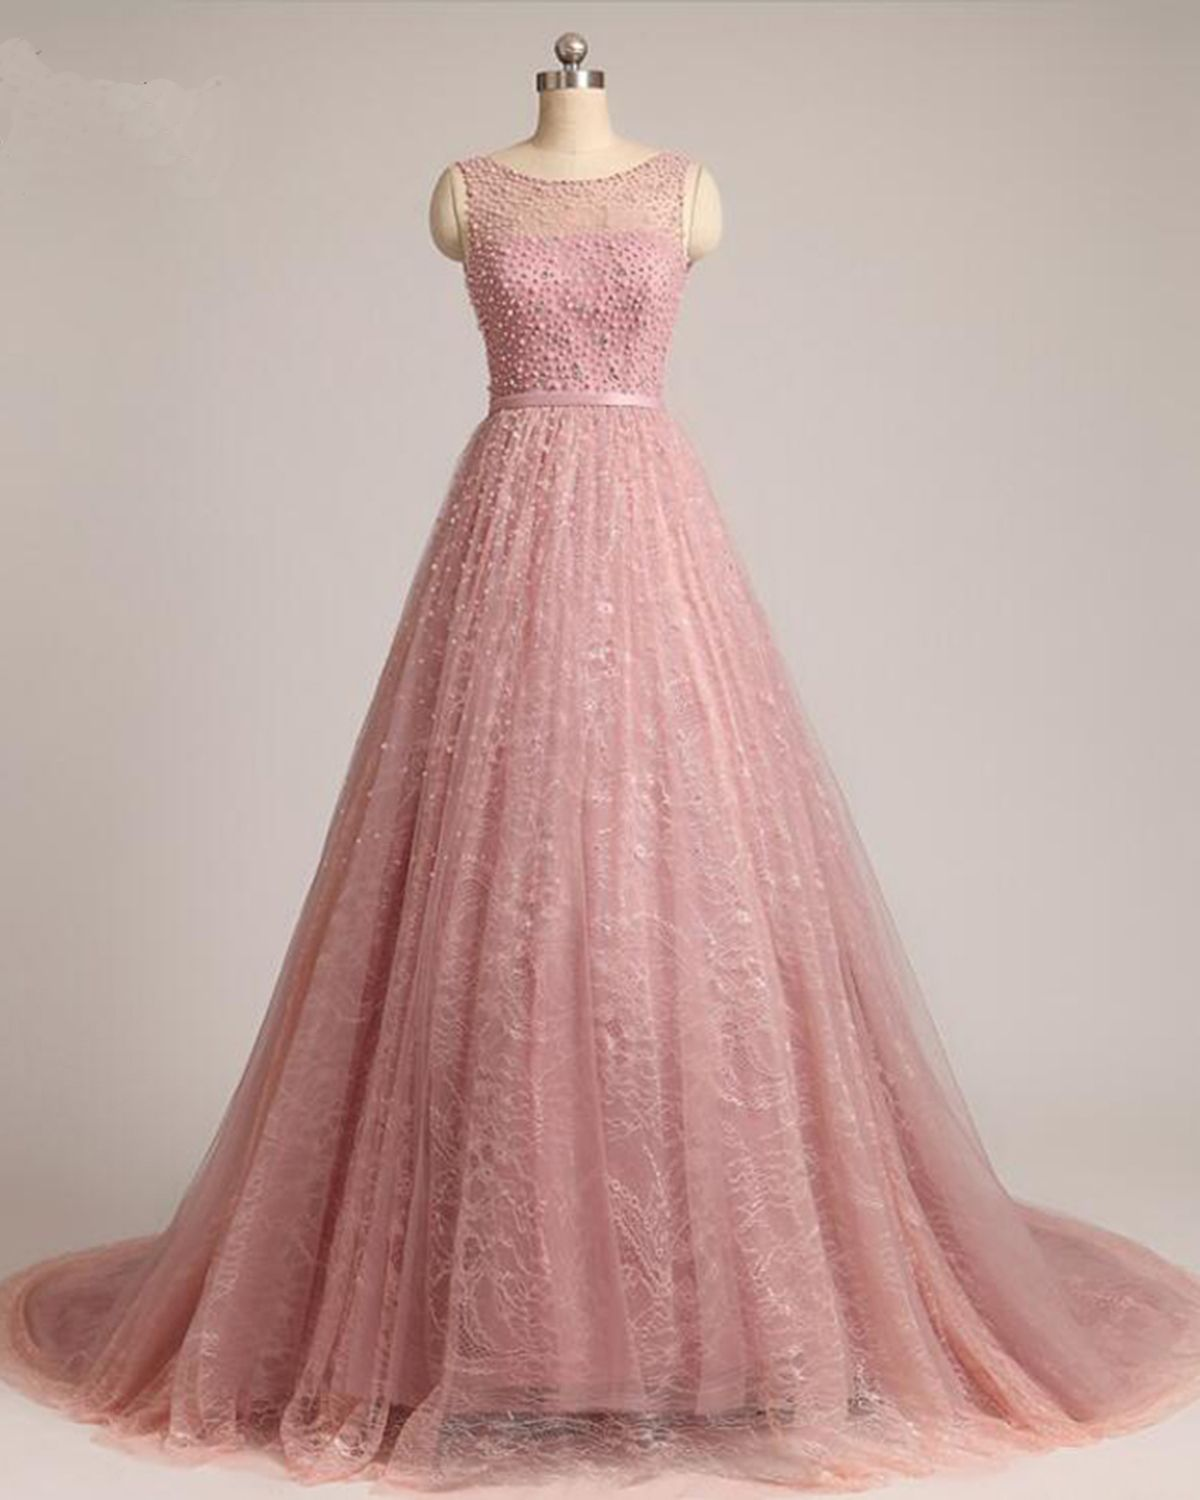 Spring pink lace long train evening dress pink formal prom dress